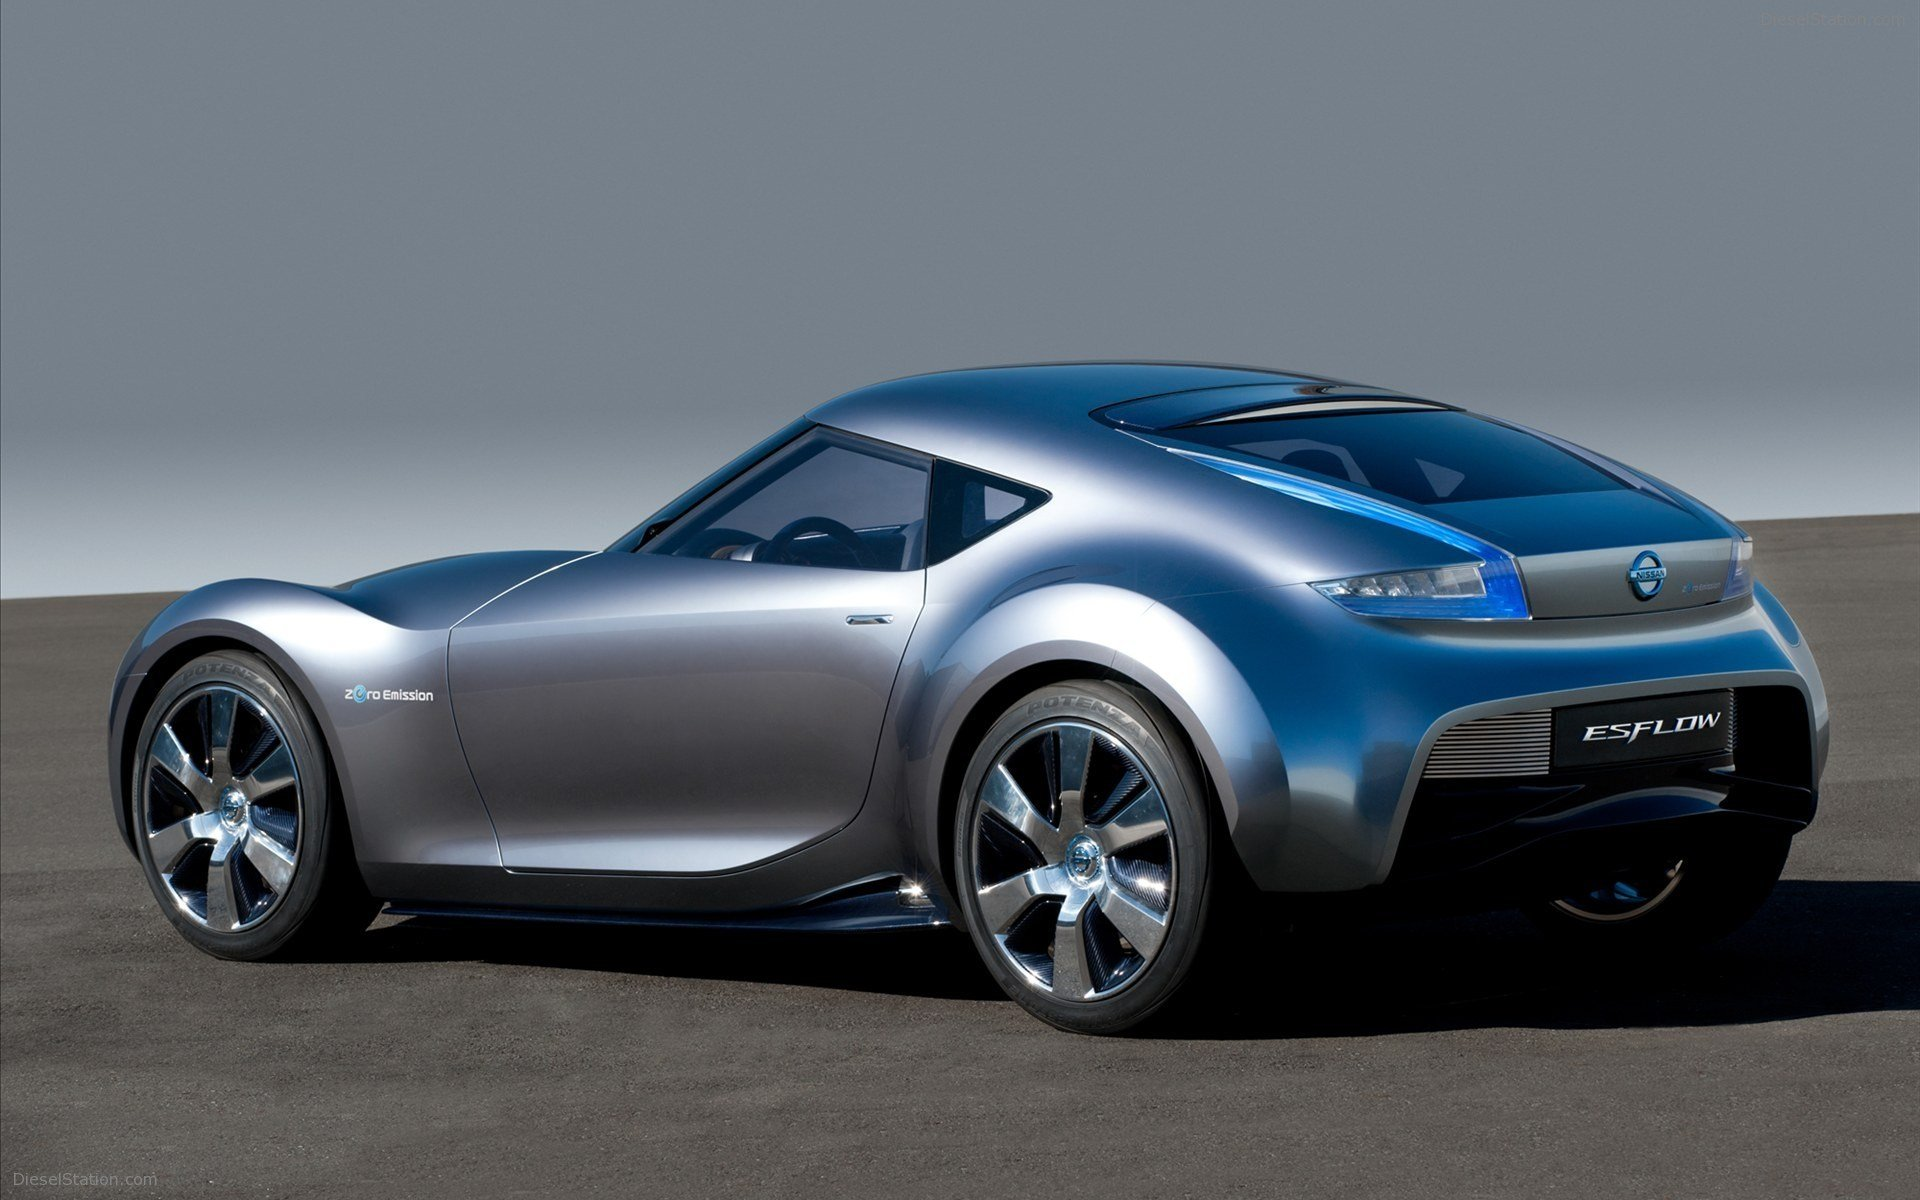 Latest Nissan Esflow Electric Concept Car 2011 Widescreen Exotic Free Download